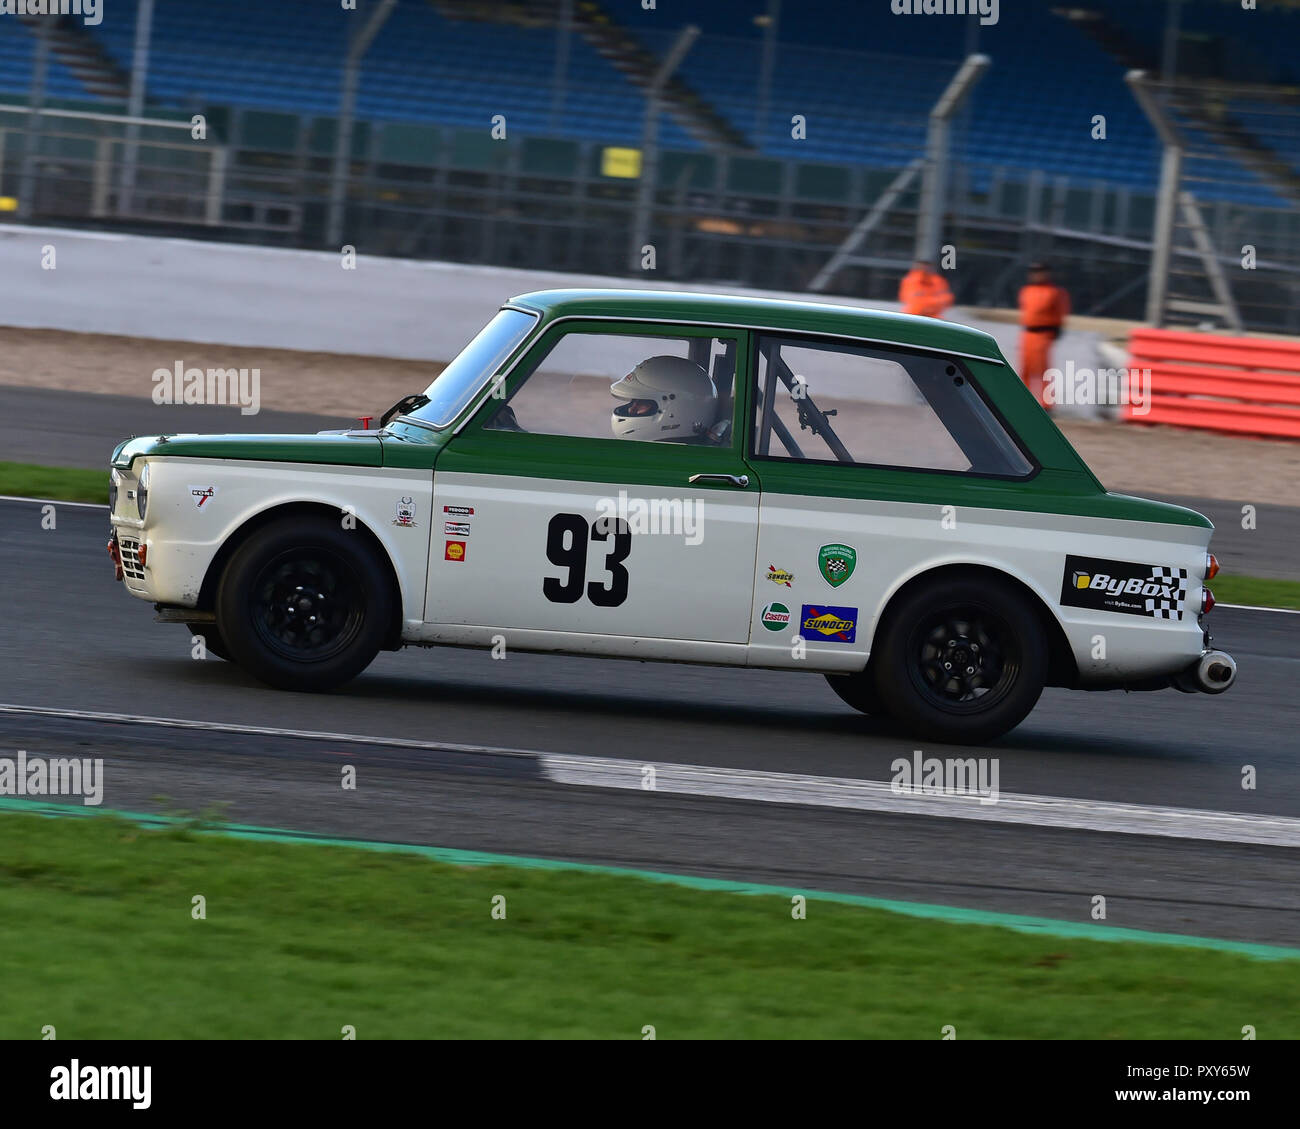 Stuart Kerr, Singer Chamois, HSCC, HRSR, Historic Touring Cars, Silverstone Finals Historic Race Meeting, Silverstone, October 2018, cars, Classic Rac - Stock Image